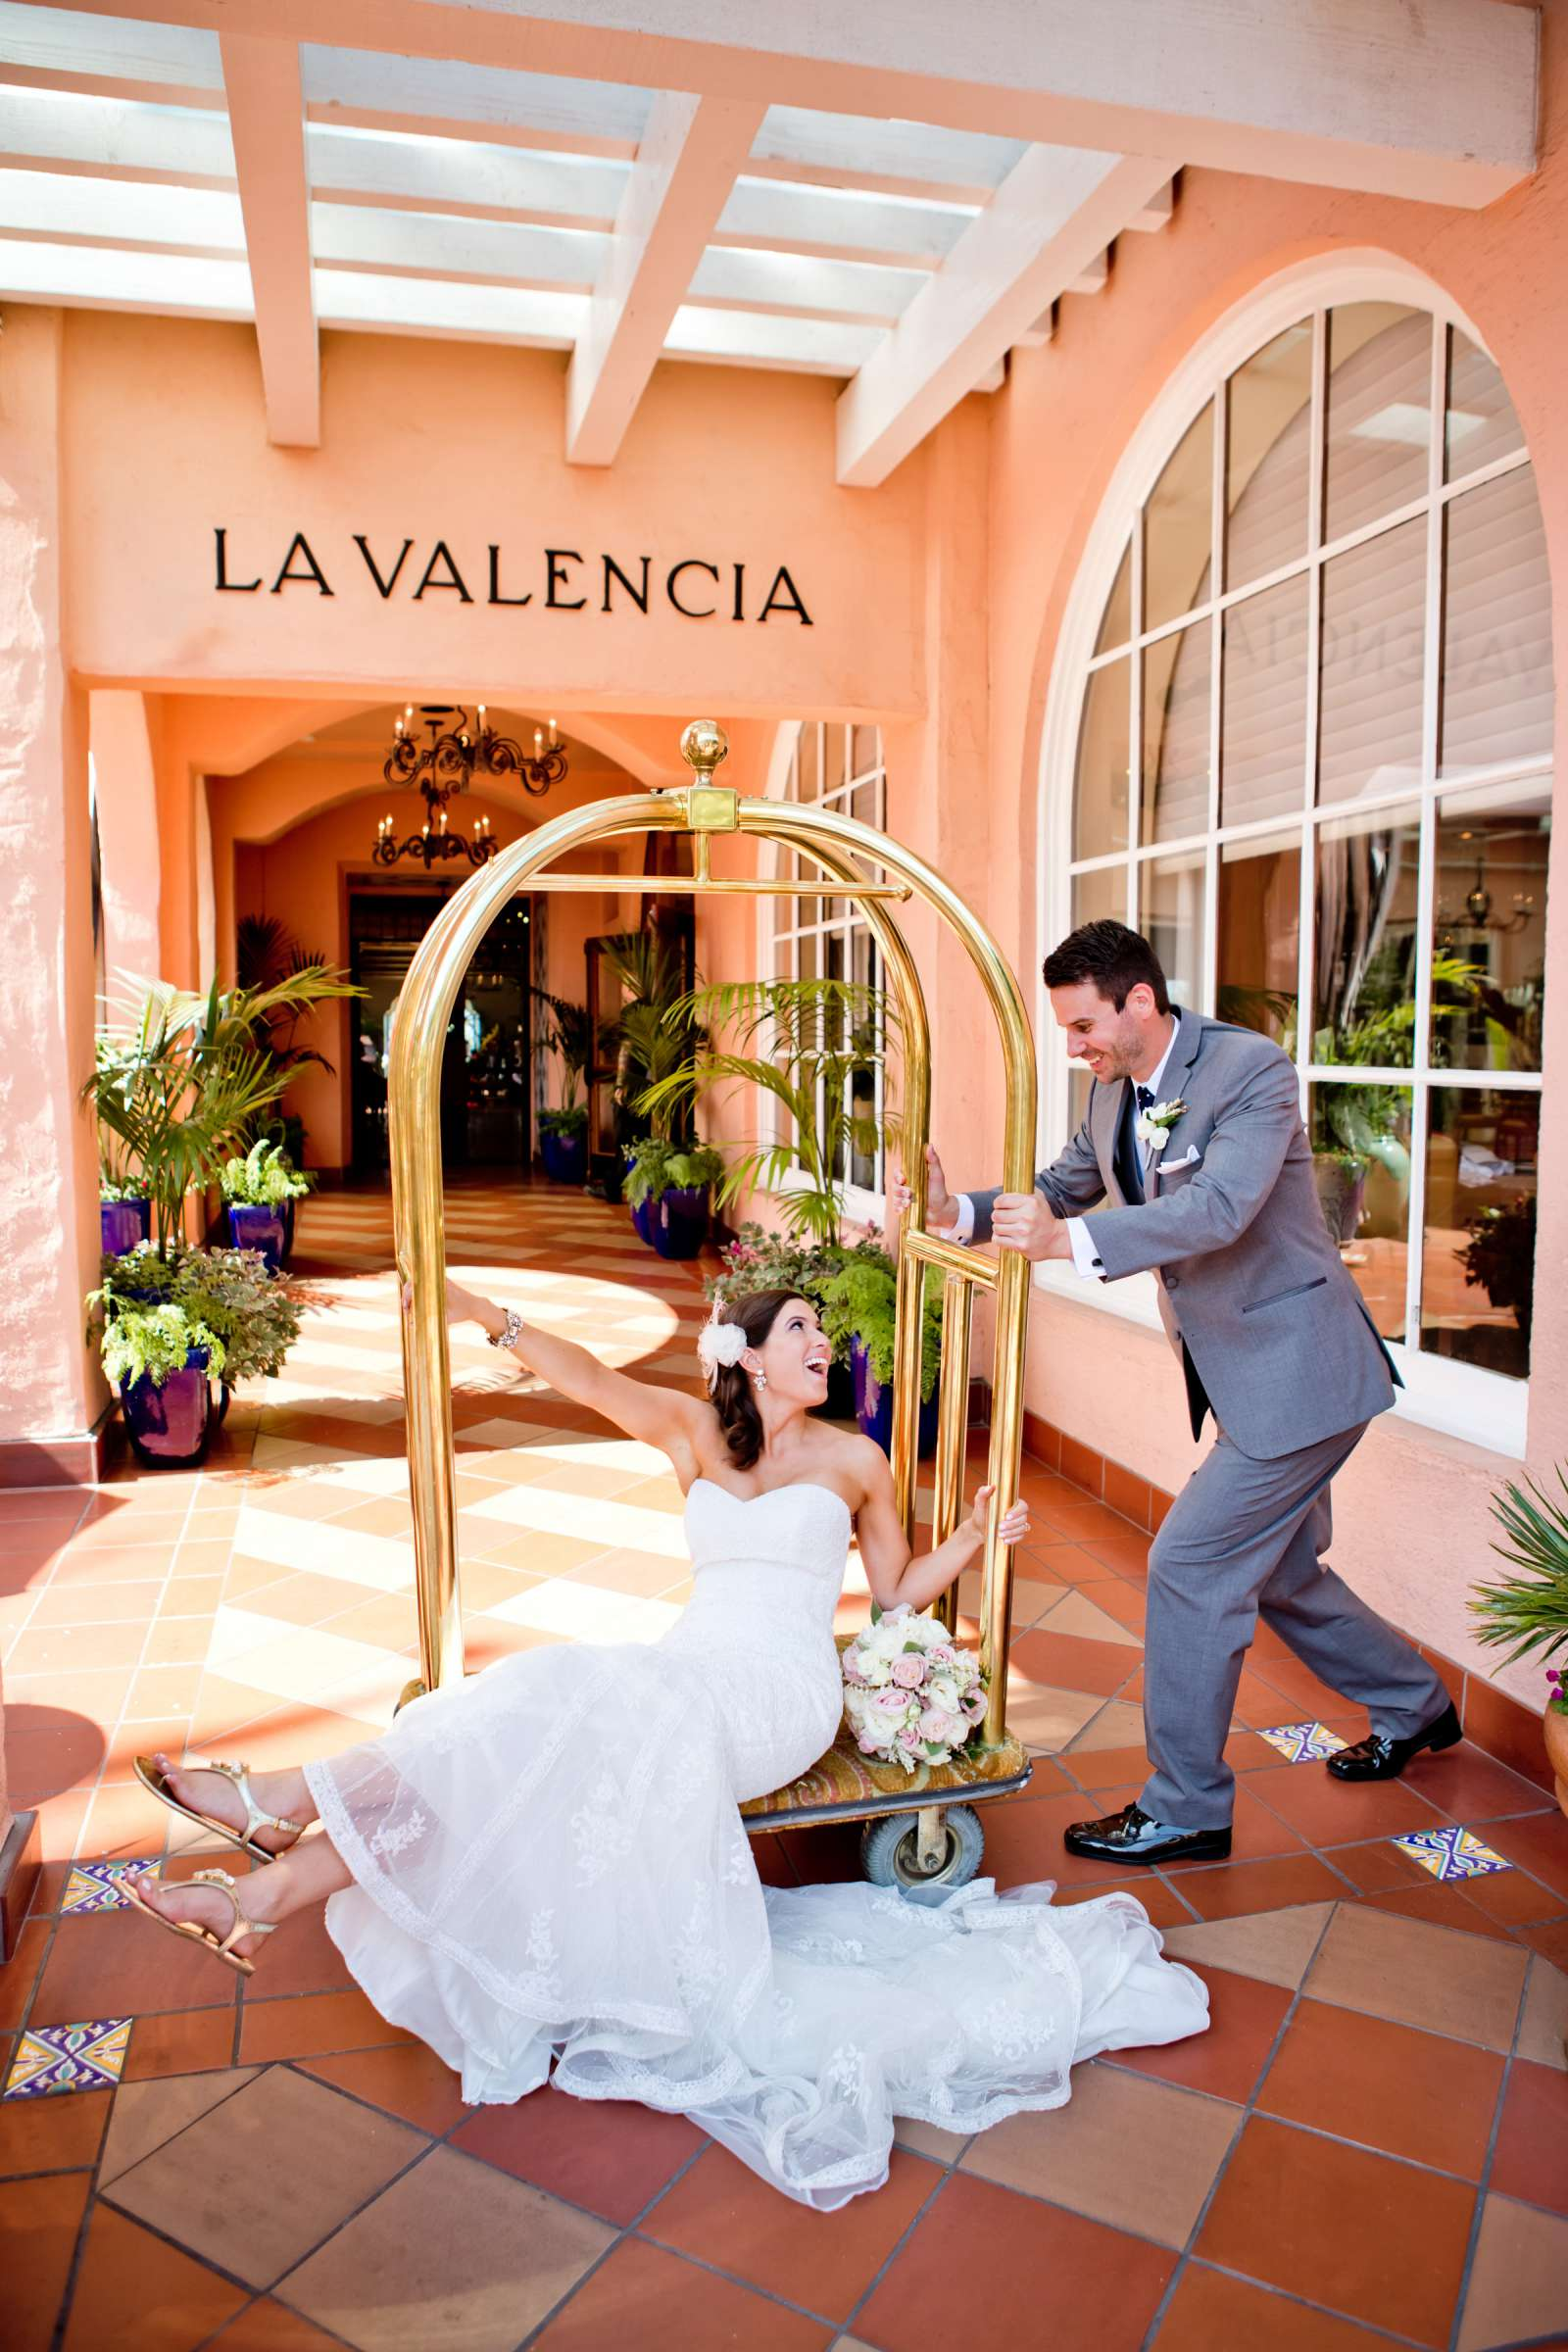 La Valencia Wedding coordinated by Monarch Weddings, Jenny and Britt Wedding Photo #364104 by True Photography